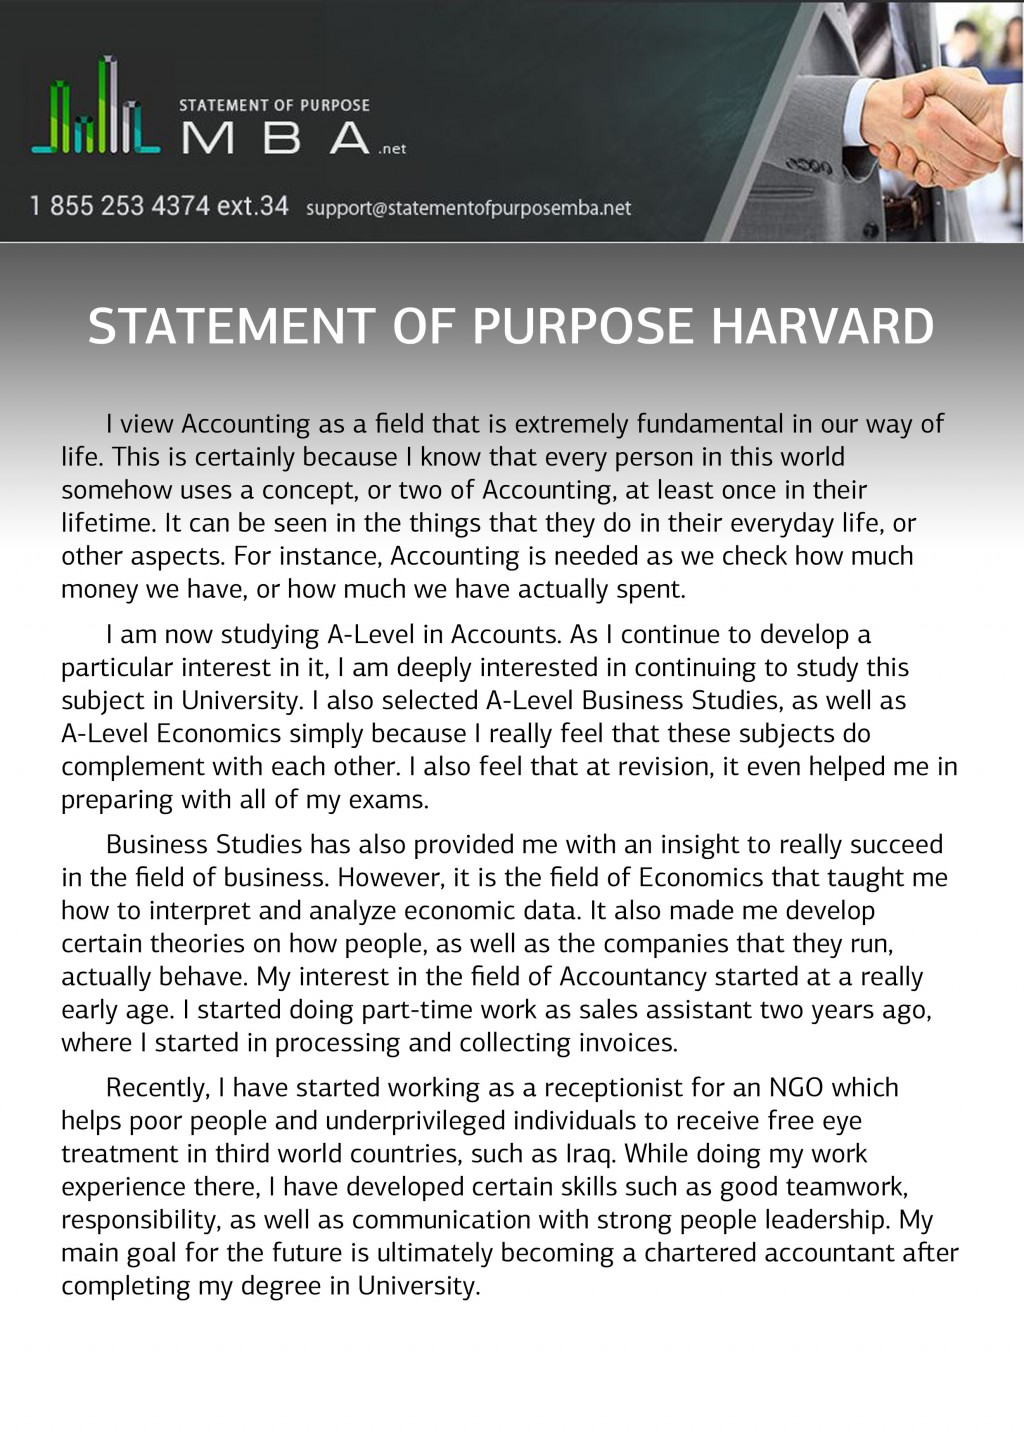 002 Stanford Mba Essay Sample Harvard Business School Tips Statement Of Pu Application Essays Length Questions Successfuls Formidable Question 2018 Large